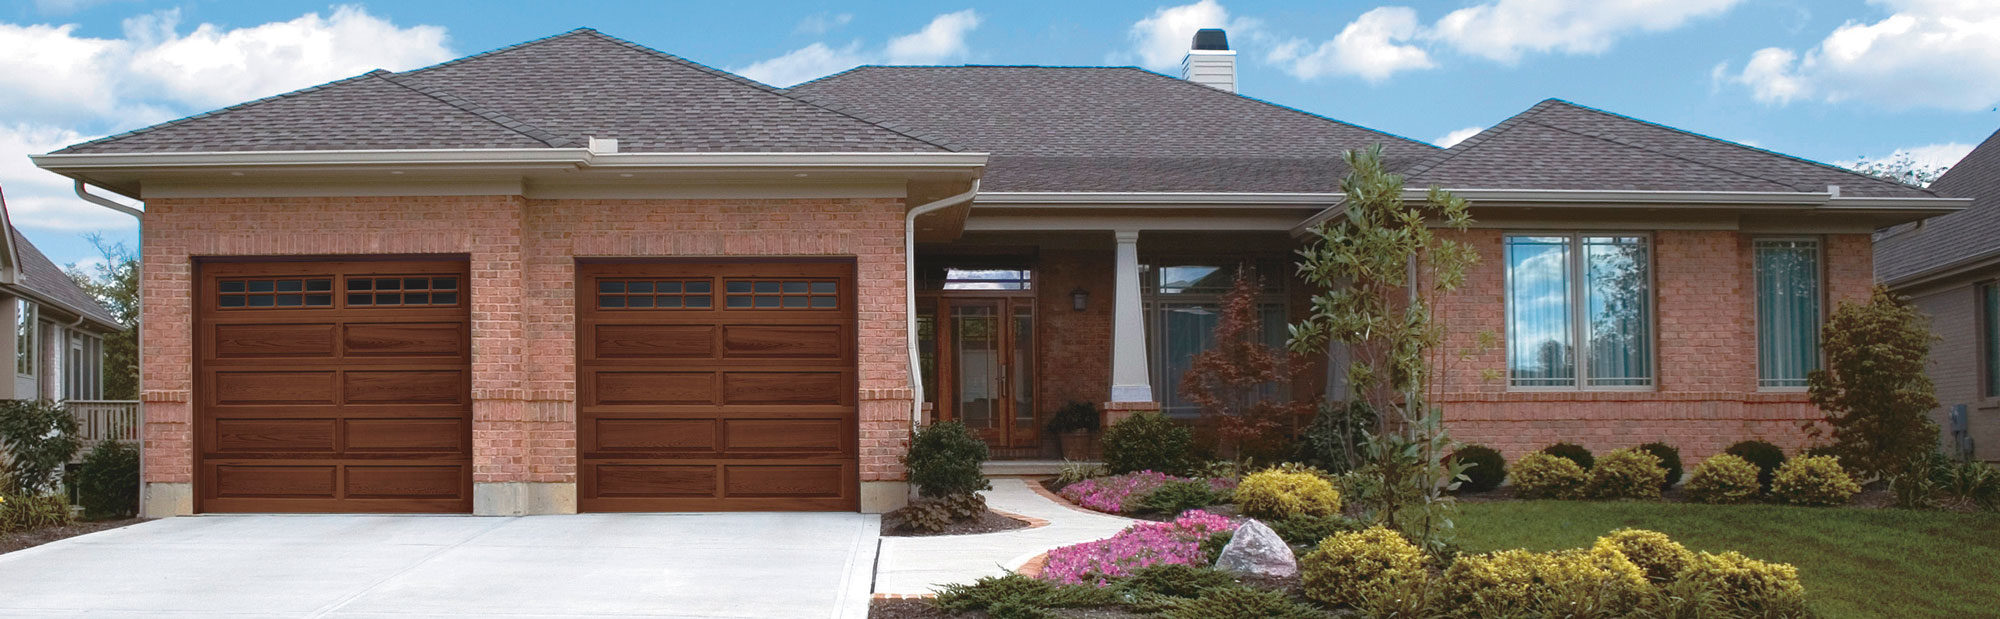 Garage Door Parts Seattle Garage Doors In The Olympic Peninsula Authorized Clopay Dealer